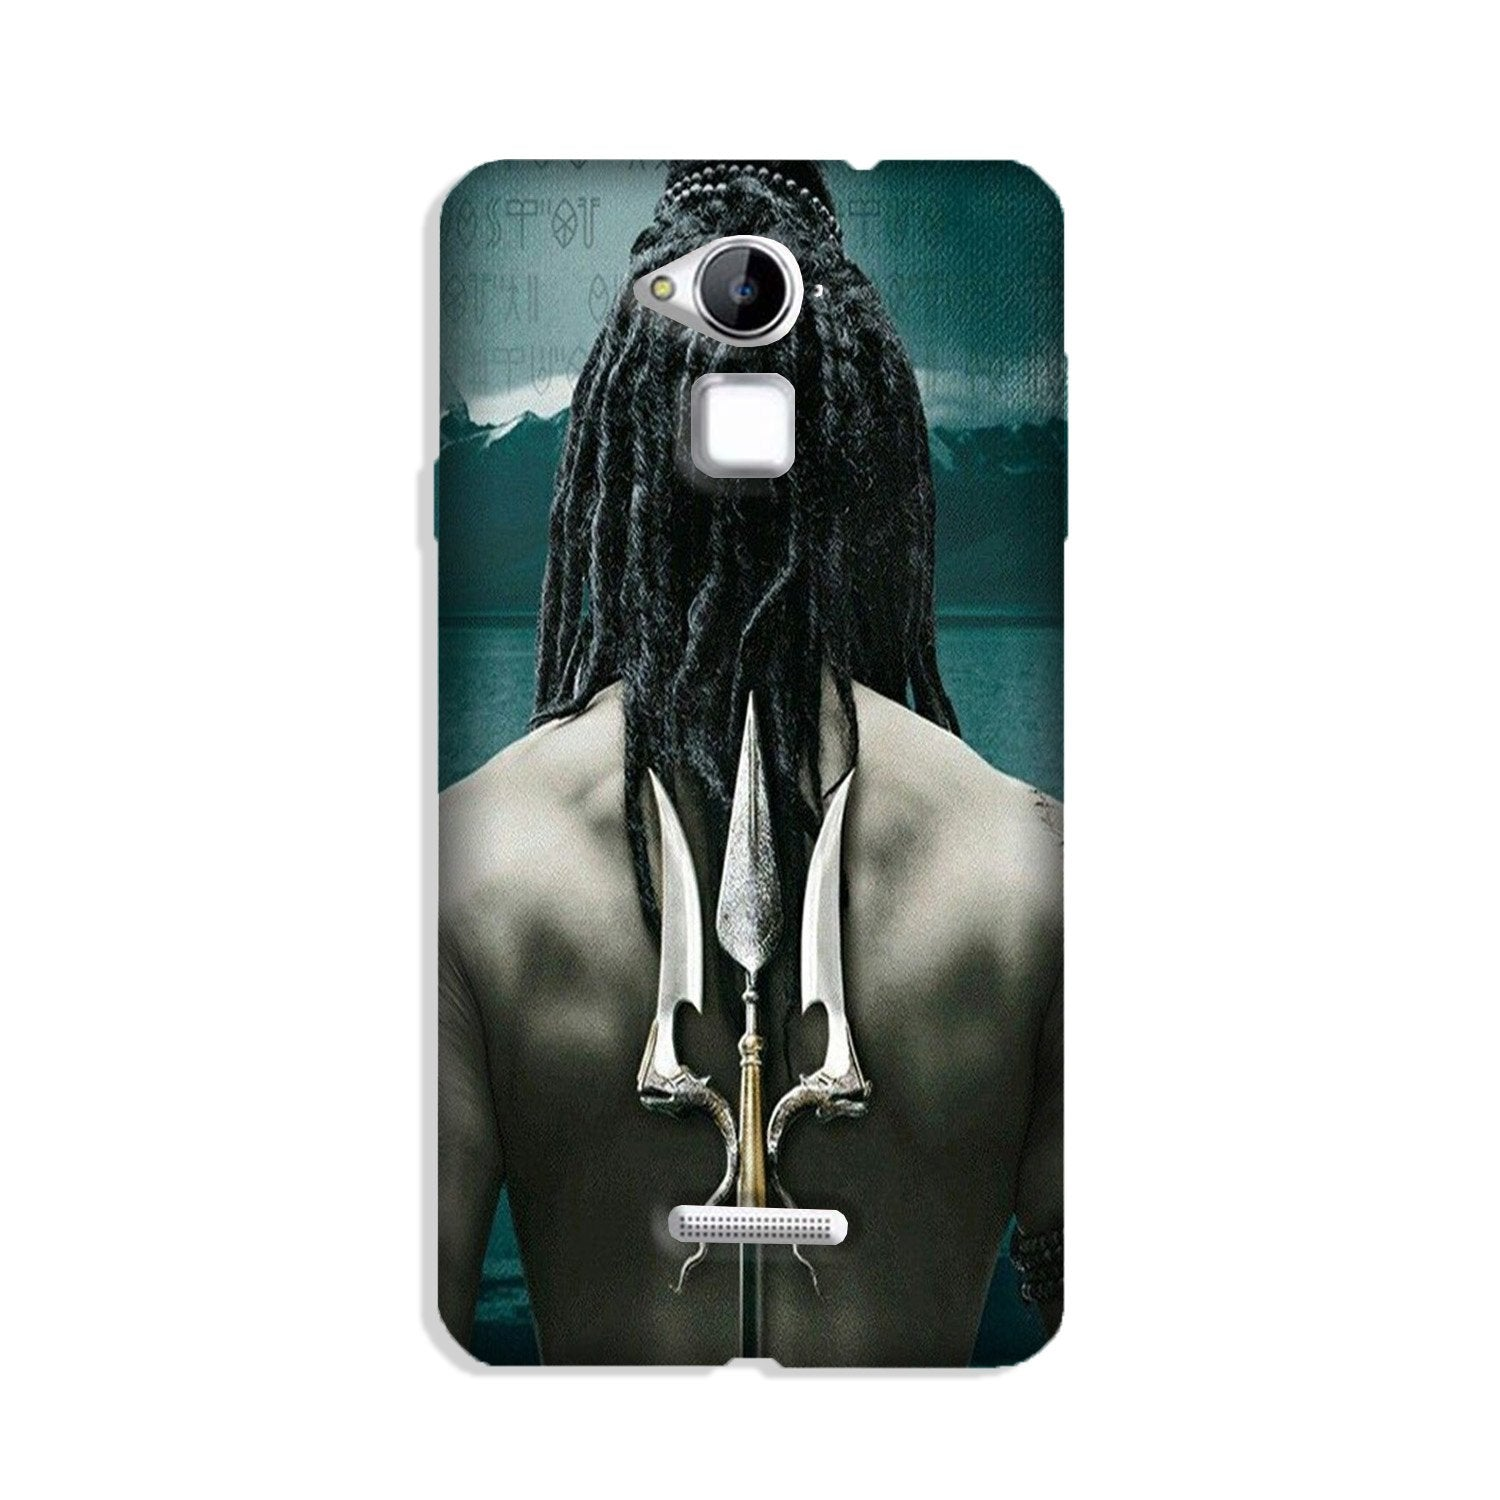 Mahakal Case for Coolpad Note 3